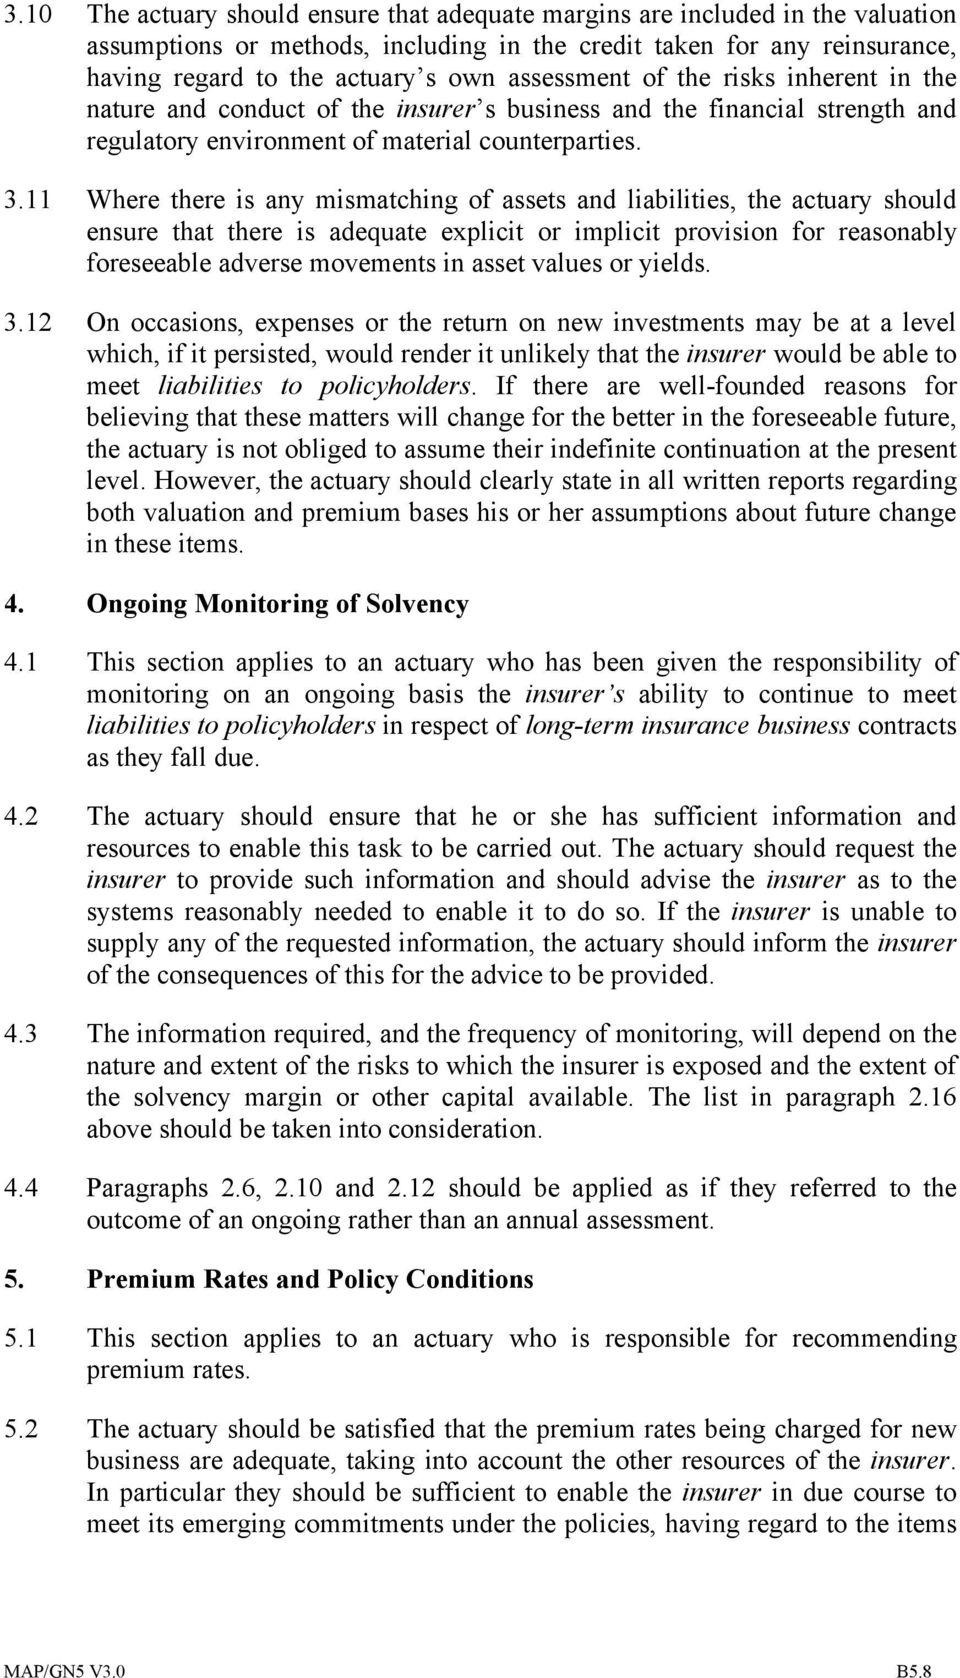 11 Where there is any mismatching of assets and liabilities, the actuary should ensure that there is adequate explicit or implicit provision for reasonably foreseeable adverse movements in asset